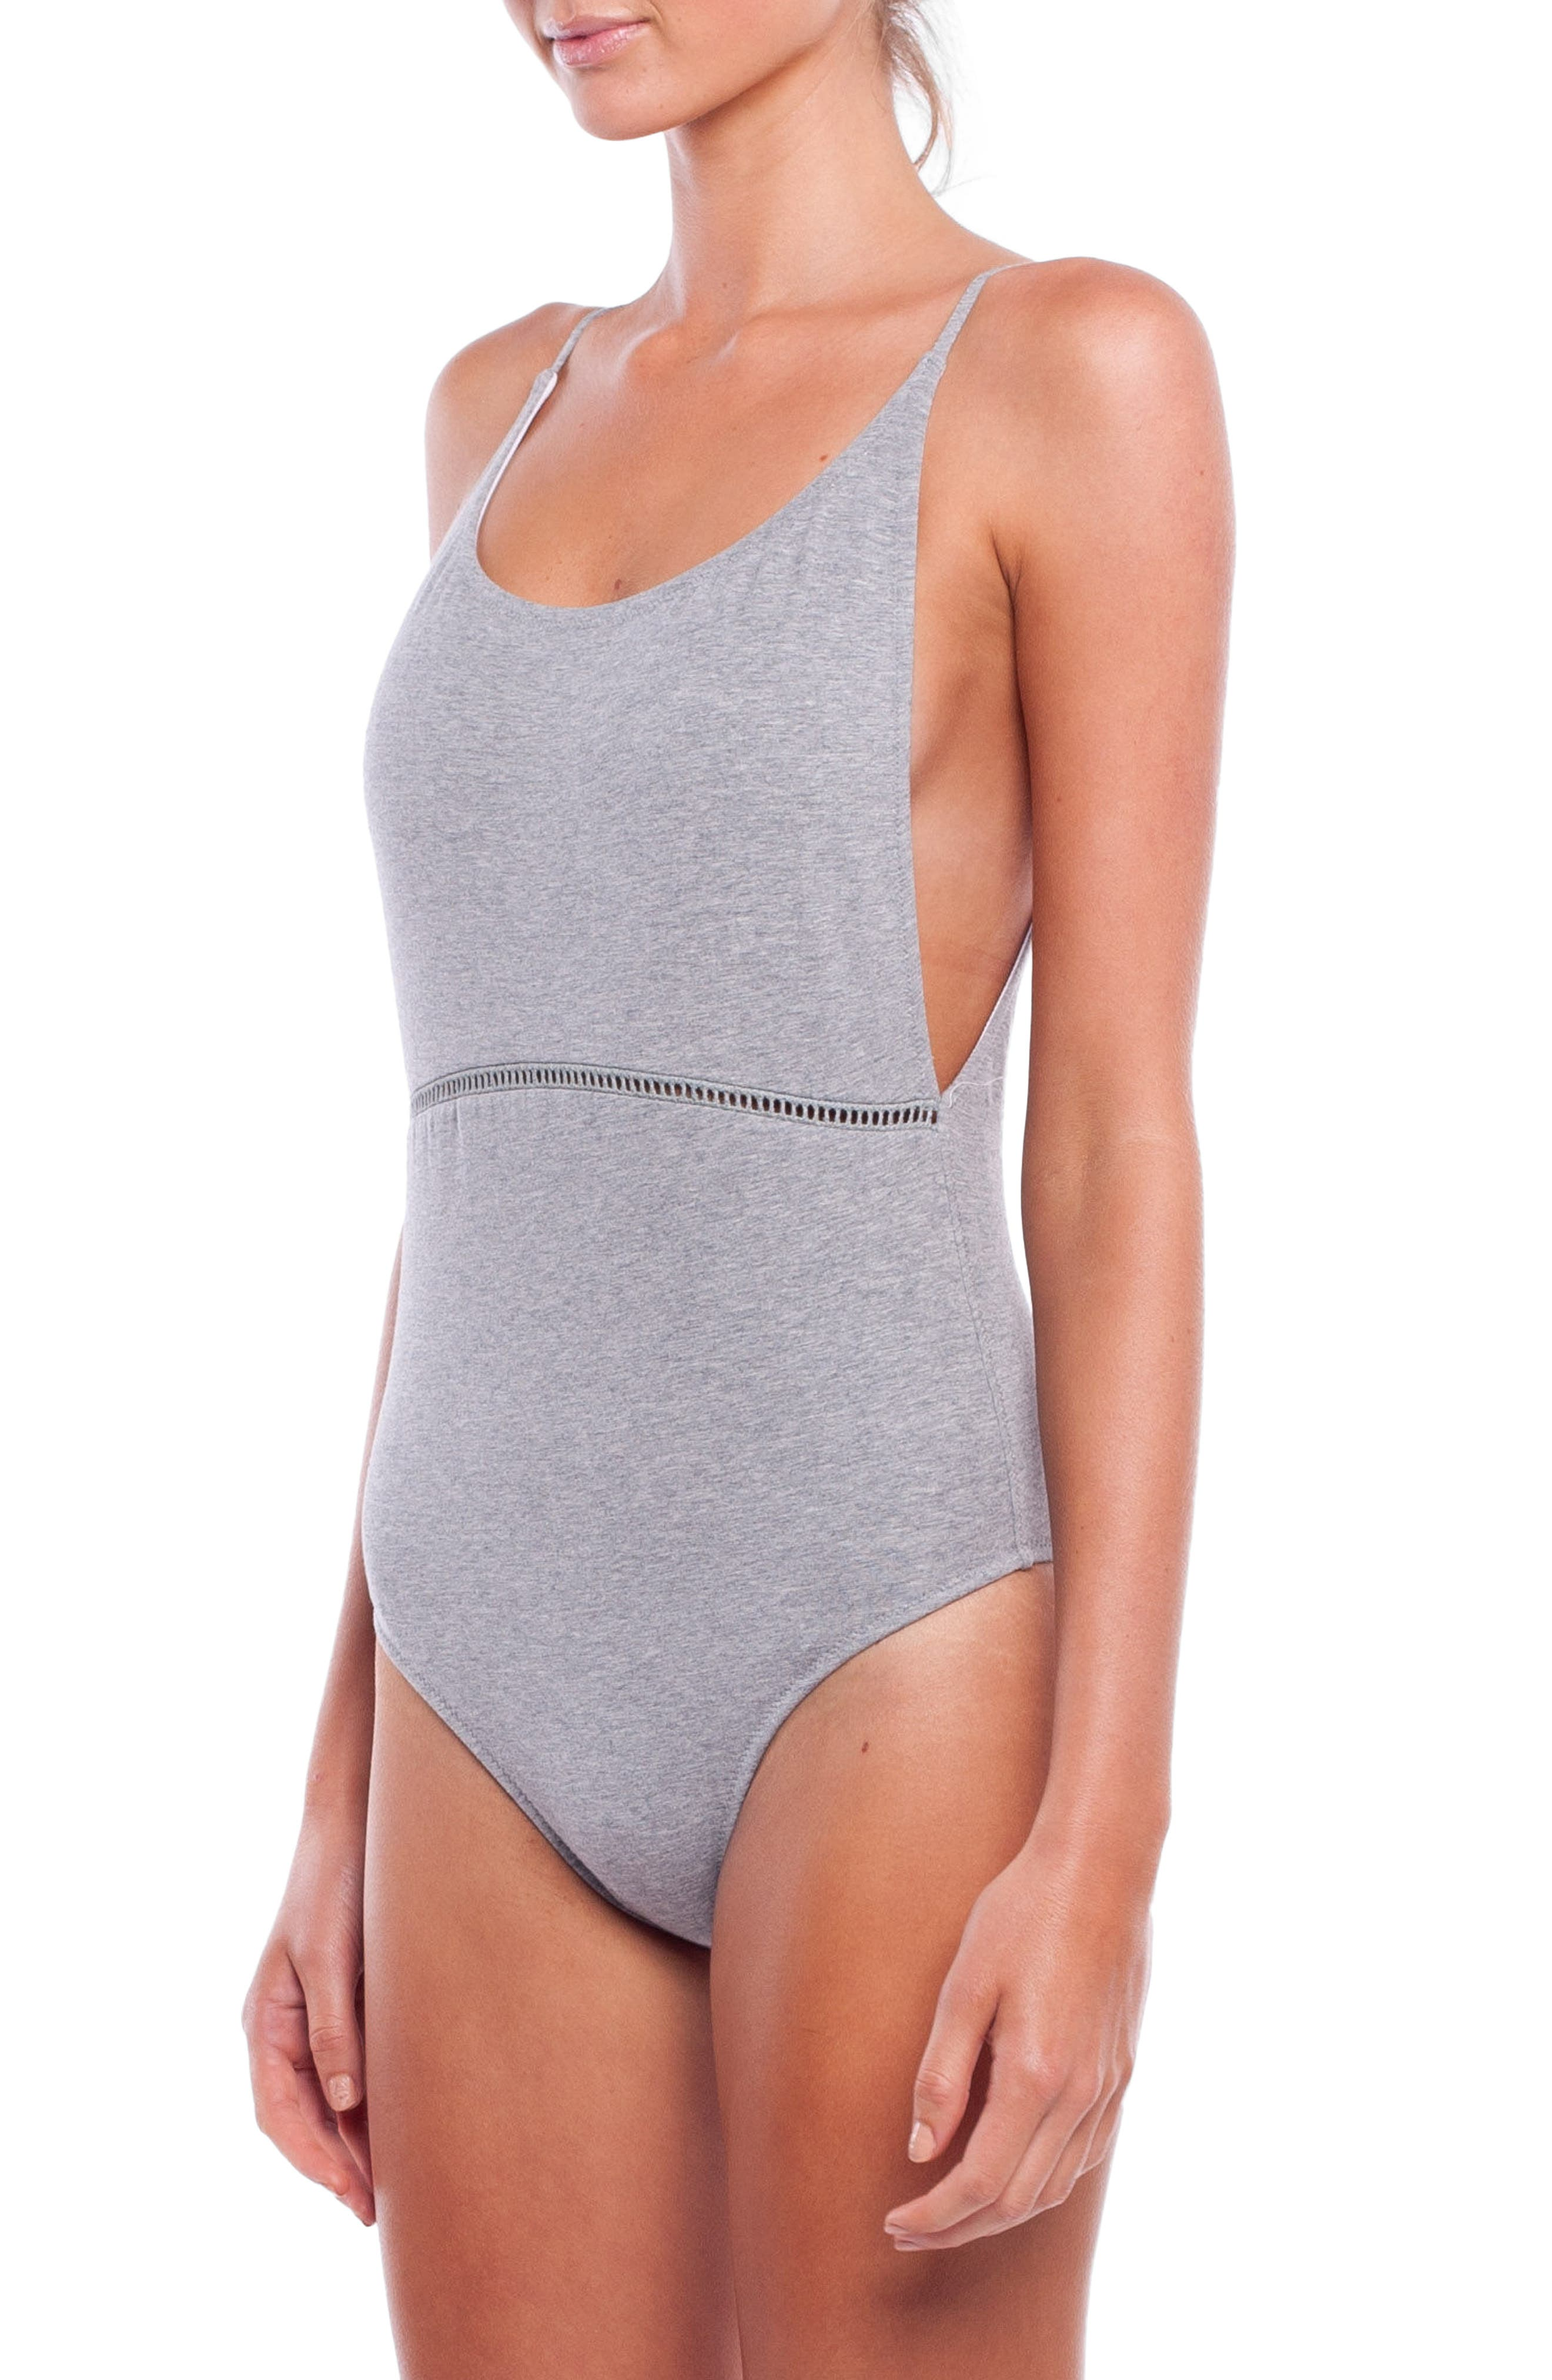 My Scoop One-Piece Swimsuit,                             Alternate thumbnail 3, color,                             020